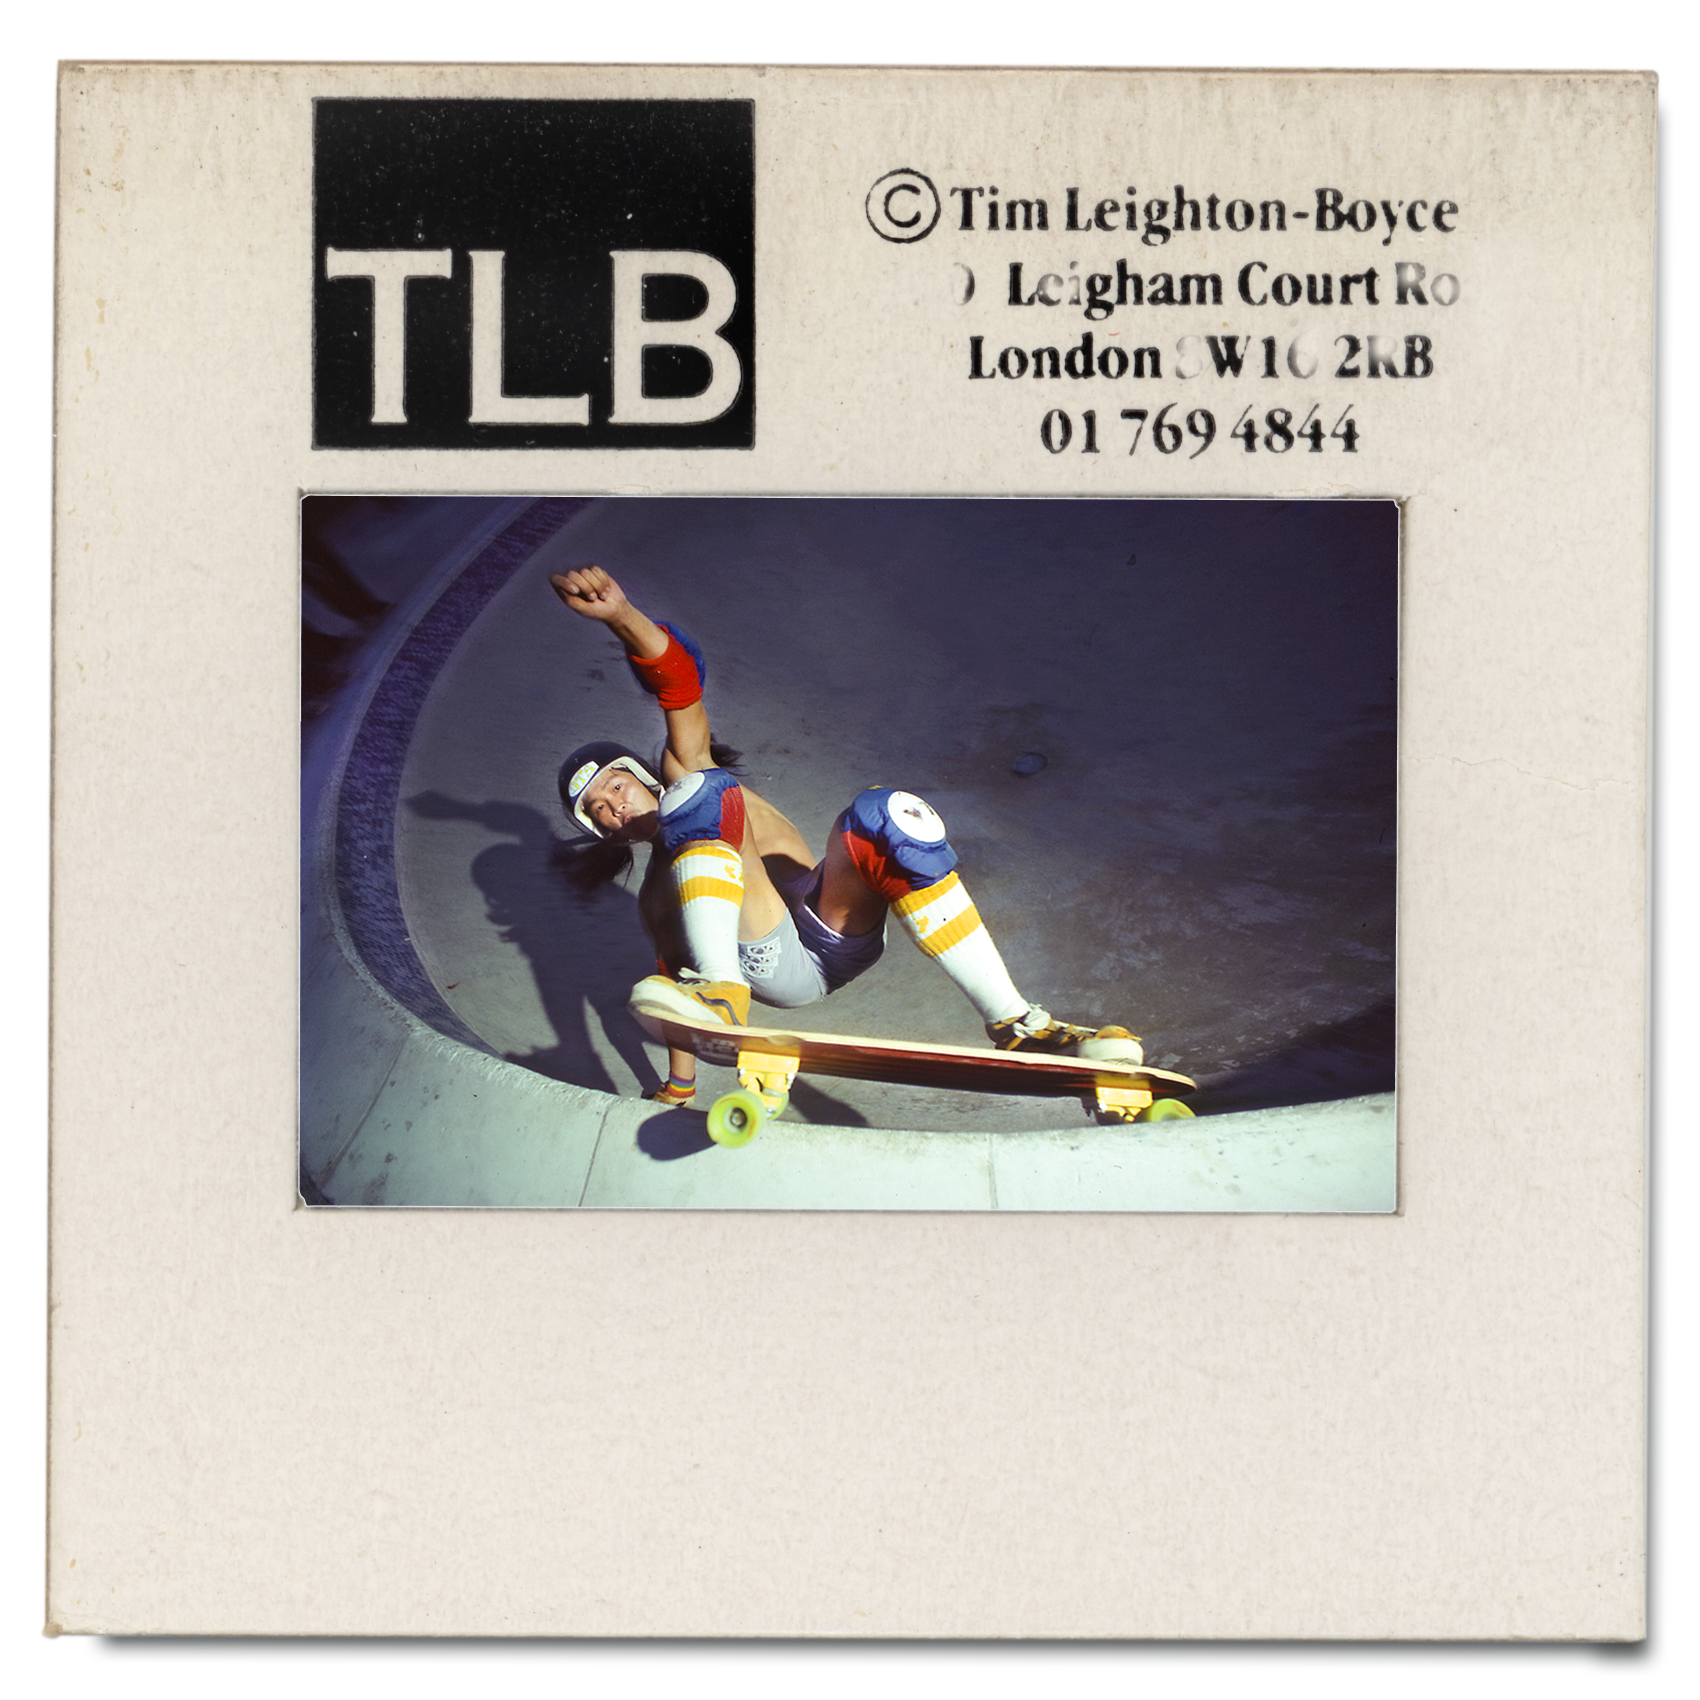 TLB SLIDE FRAME LAYERS 4.png